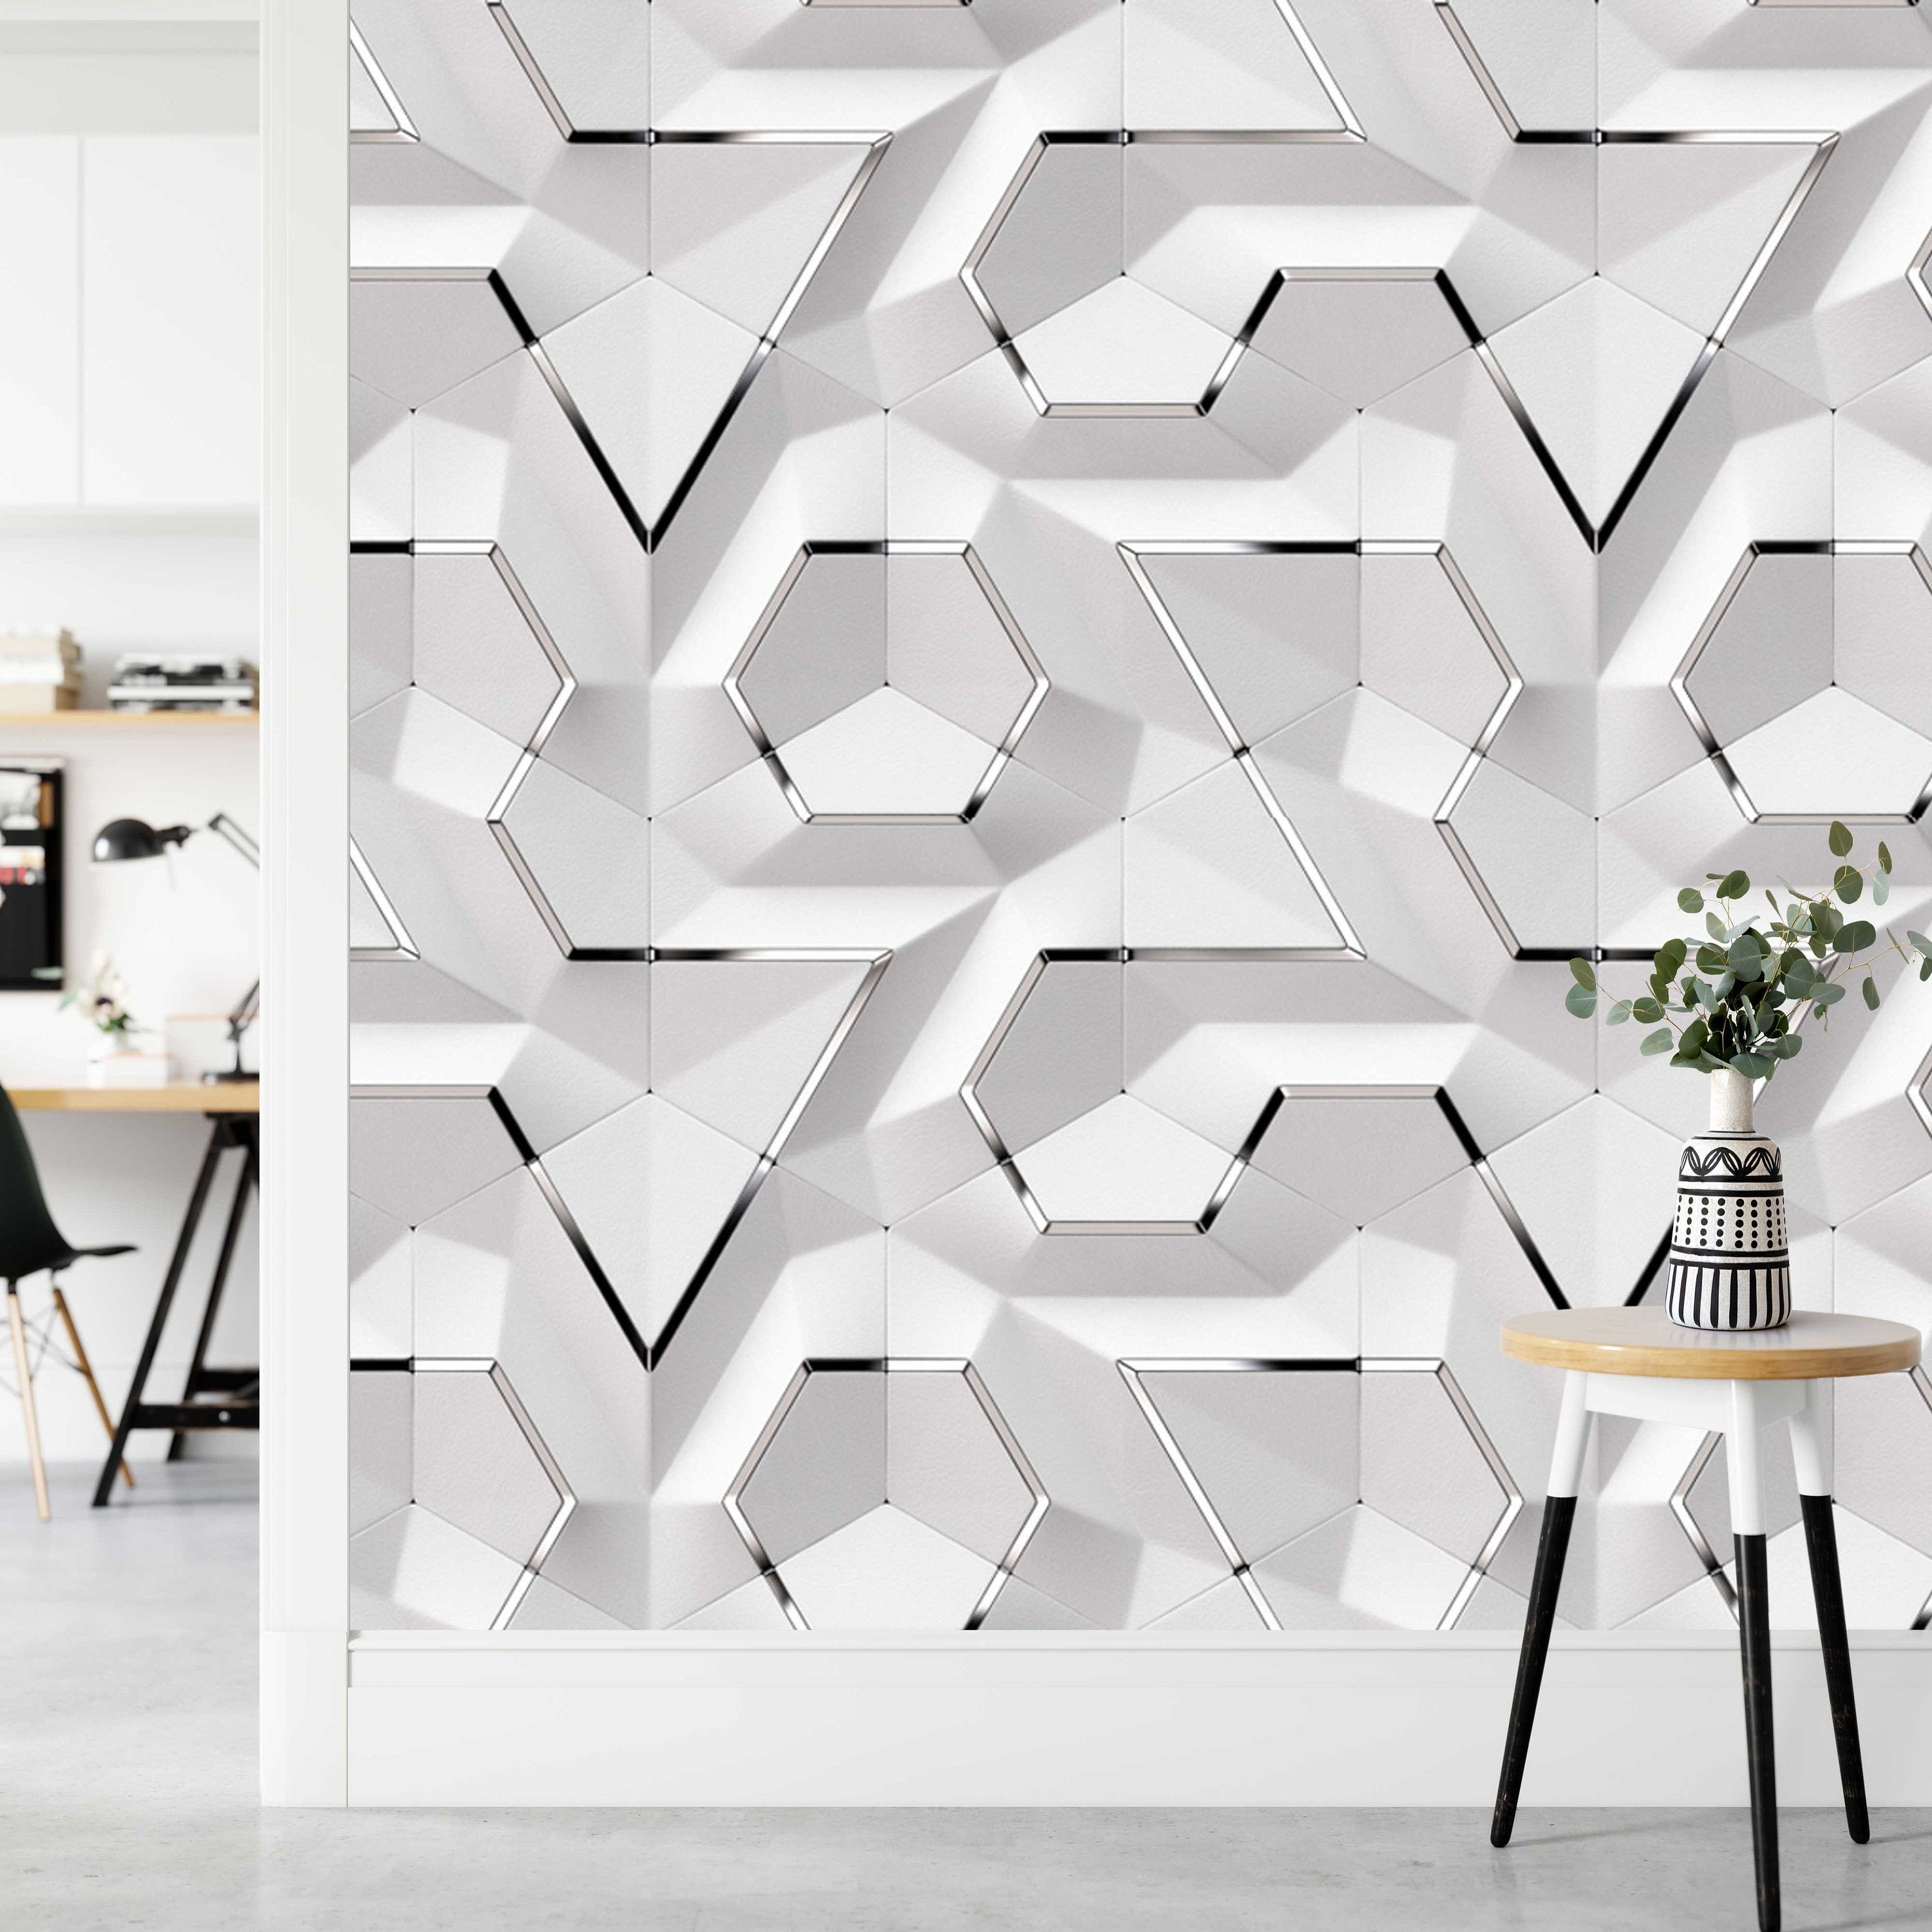 Panel Decor Geometric Background Wallpaper Self Adhesive Peel Etsy In 2020 Wall Paint Designs Silver Decor Design Living Room Wallpaper